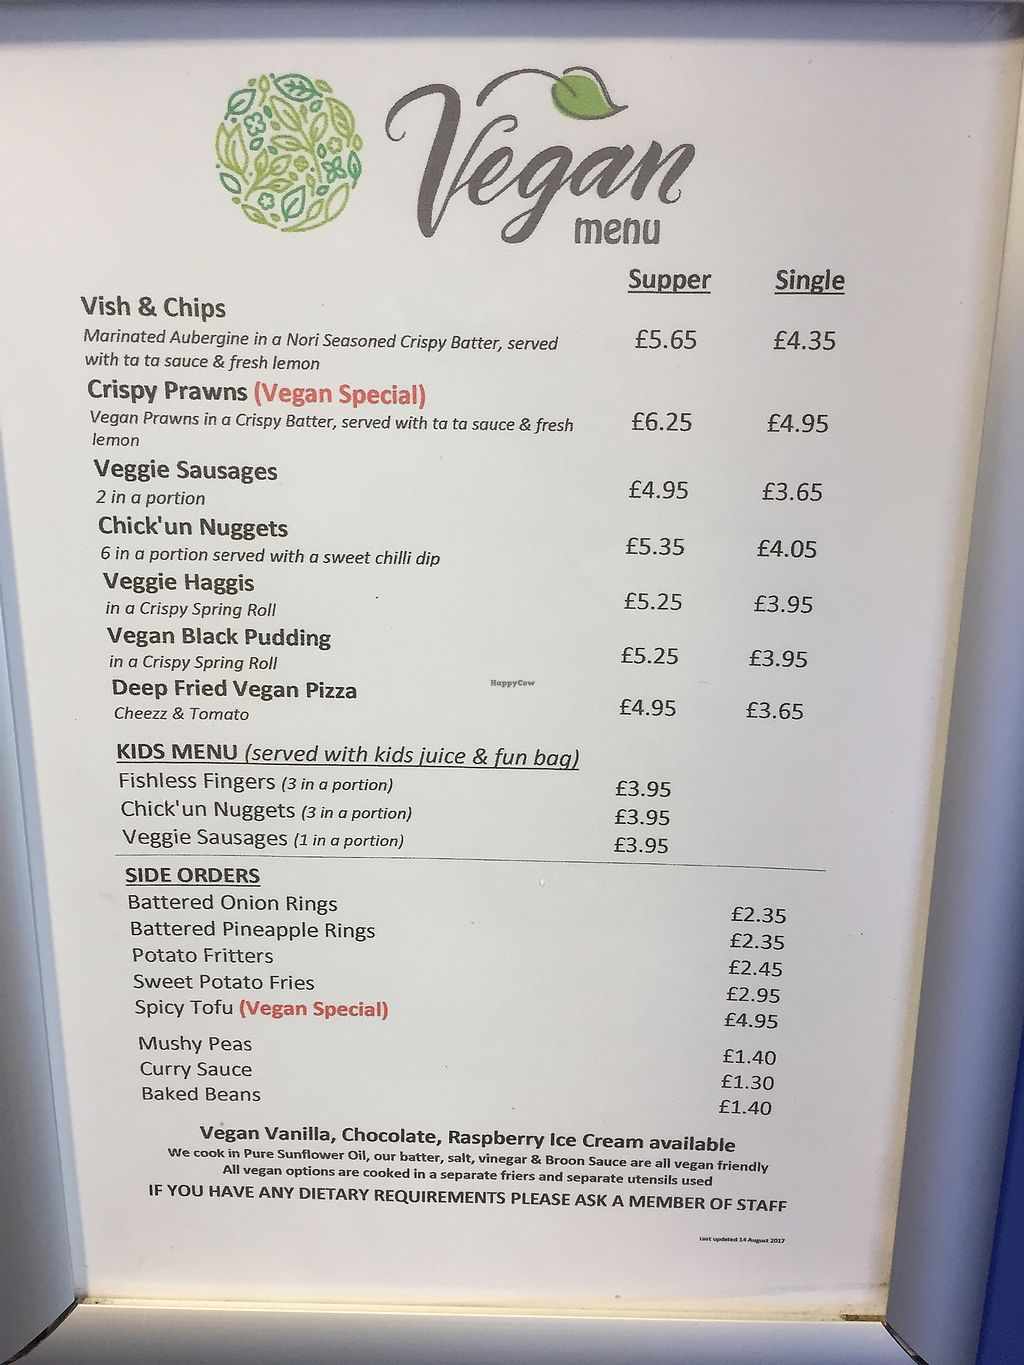 """Photo of Land and Sea Fish and Chip Shop  by <a href=""""/members/profile/StephenLarkin"""">StephenLarkin</a> <br/>Their vegan menu <br/> August 19, 2017  - <a href='/contact/abuse/image/91076/294275'>Report</a>"""